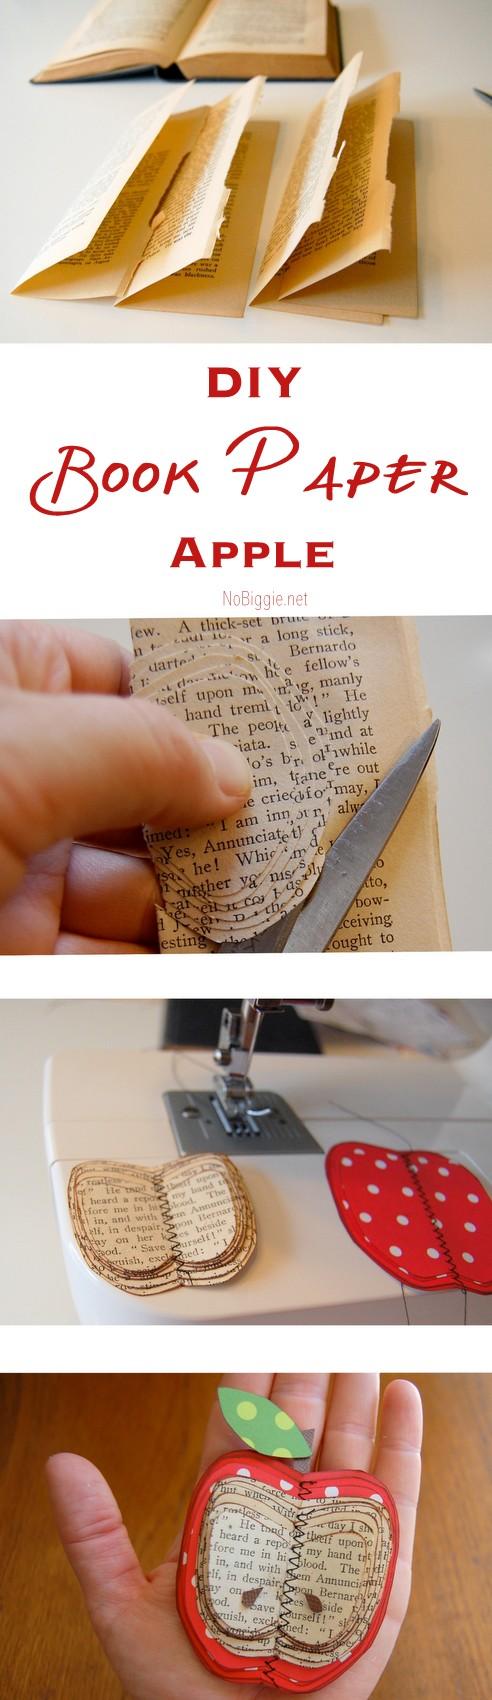 DIY book paper apple - make this fun paper craft with cool vintage book paper | NoBiggie.net